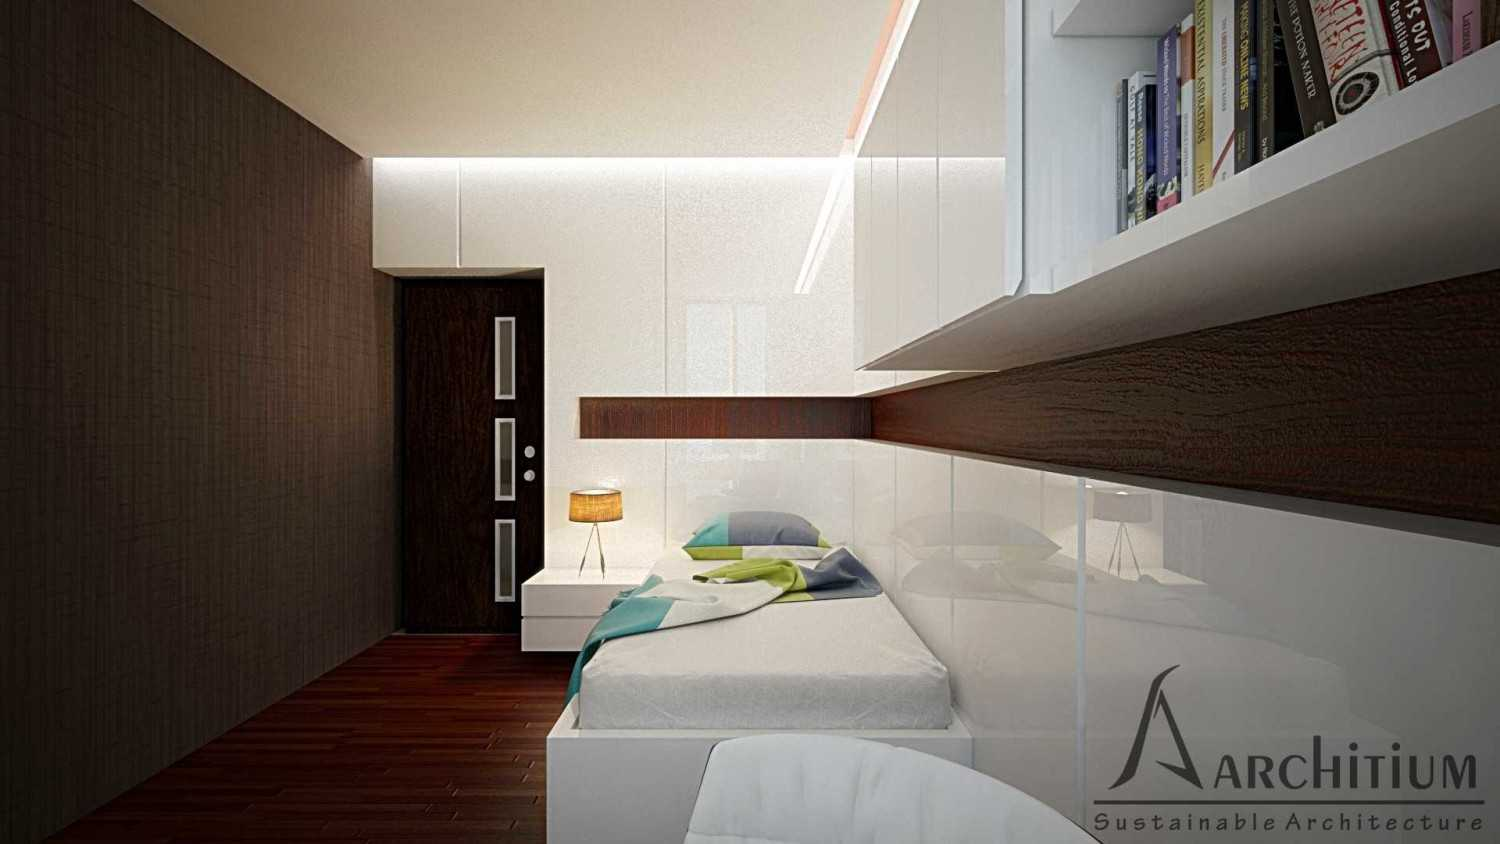 Architium Design Penthouse At Regatta Apartment Regatta Apartment, Jakarta Regatta Apartment, Jakarta Bedroom-B-1 Minimalis 27417